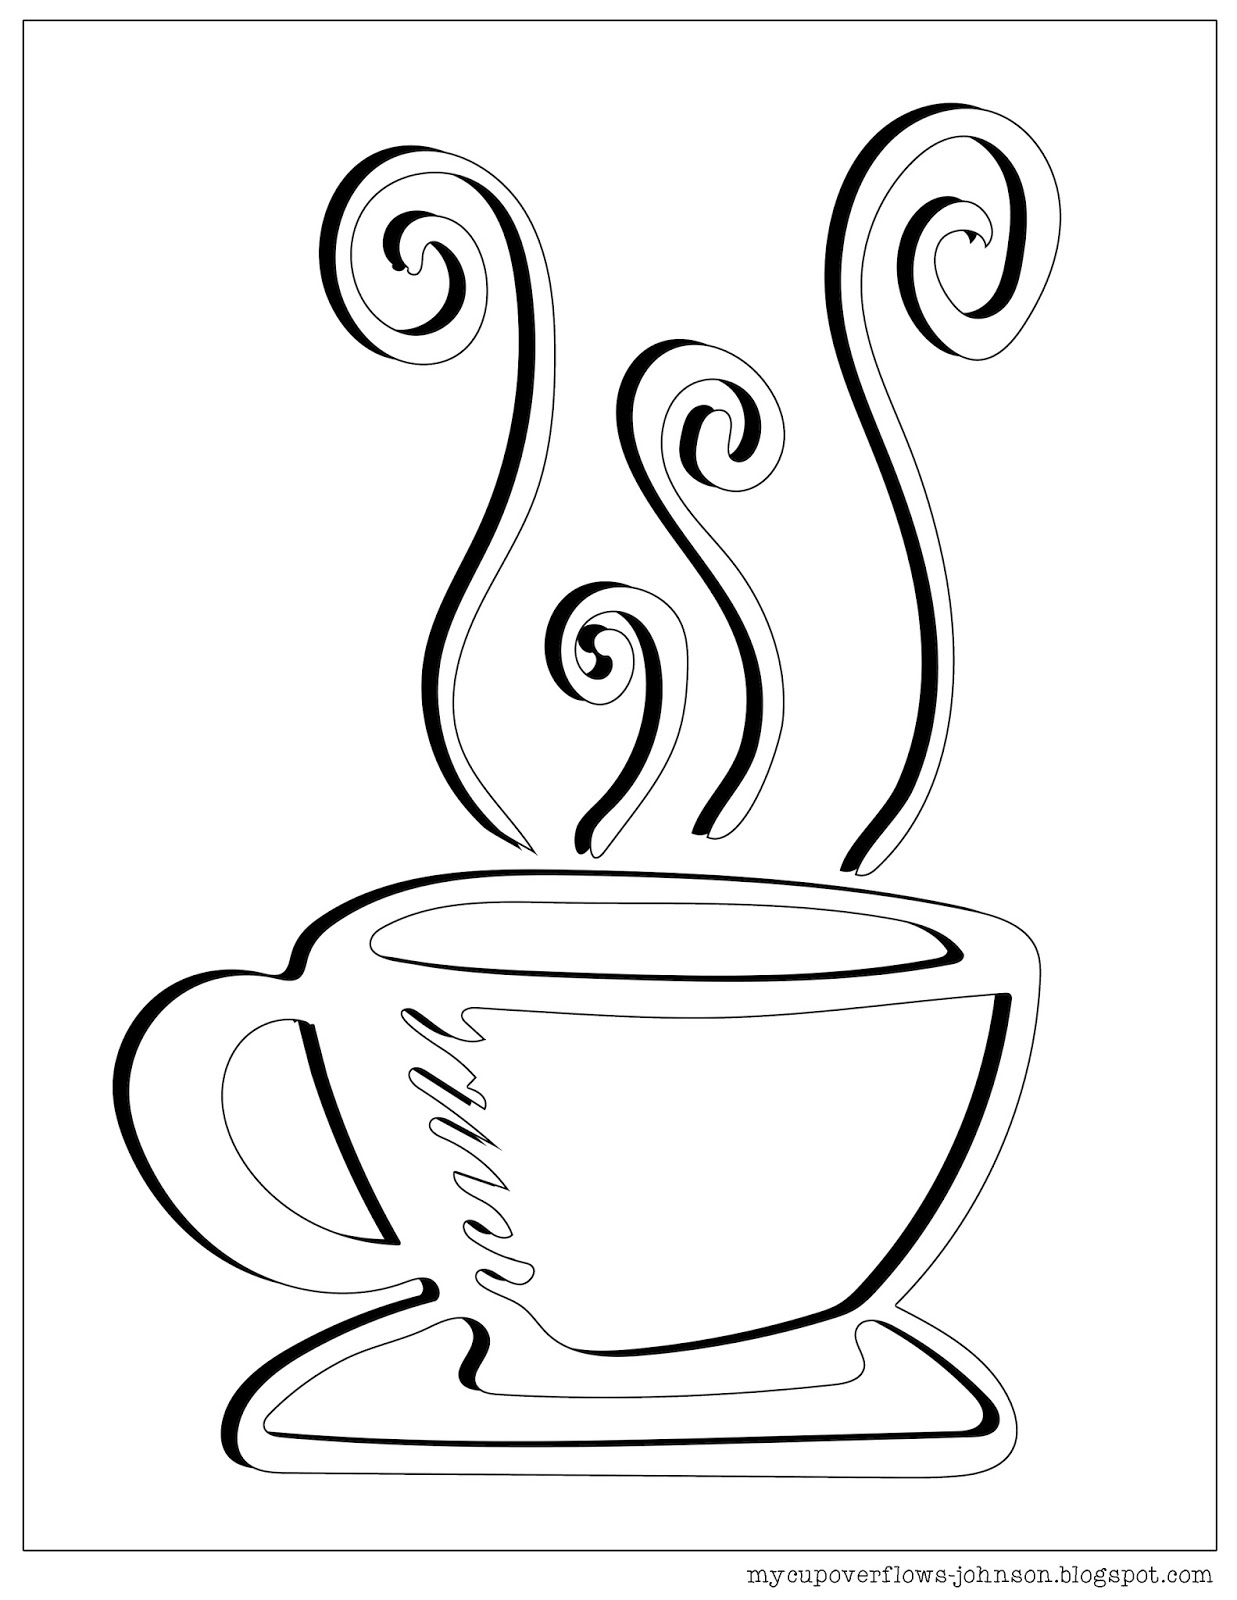 cup of tea coloring page - my cup overflows tea and coffee